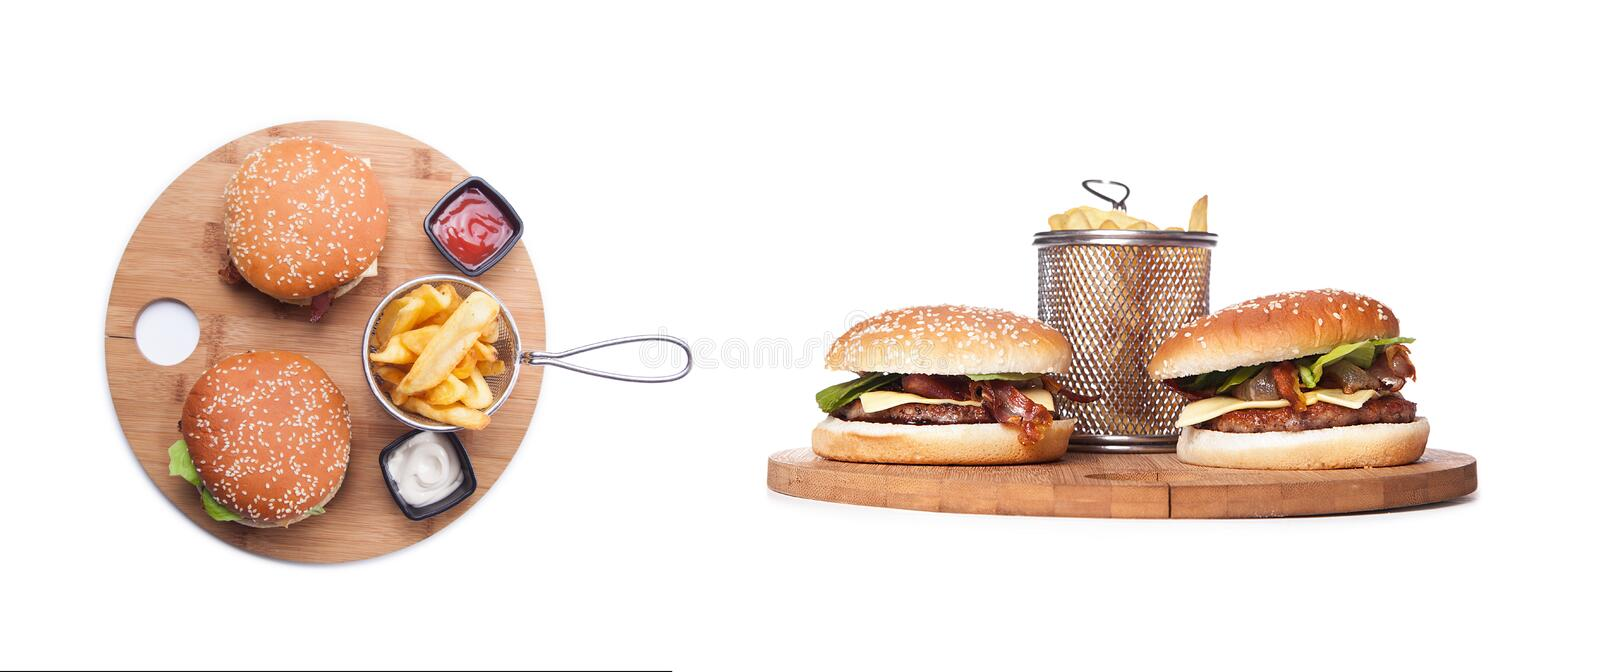 Two homemade burgers on wooden plate isolated on black background,Two cheeseburgers on the wooden plate. Breakfast with hamburgers royalty free stock image